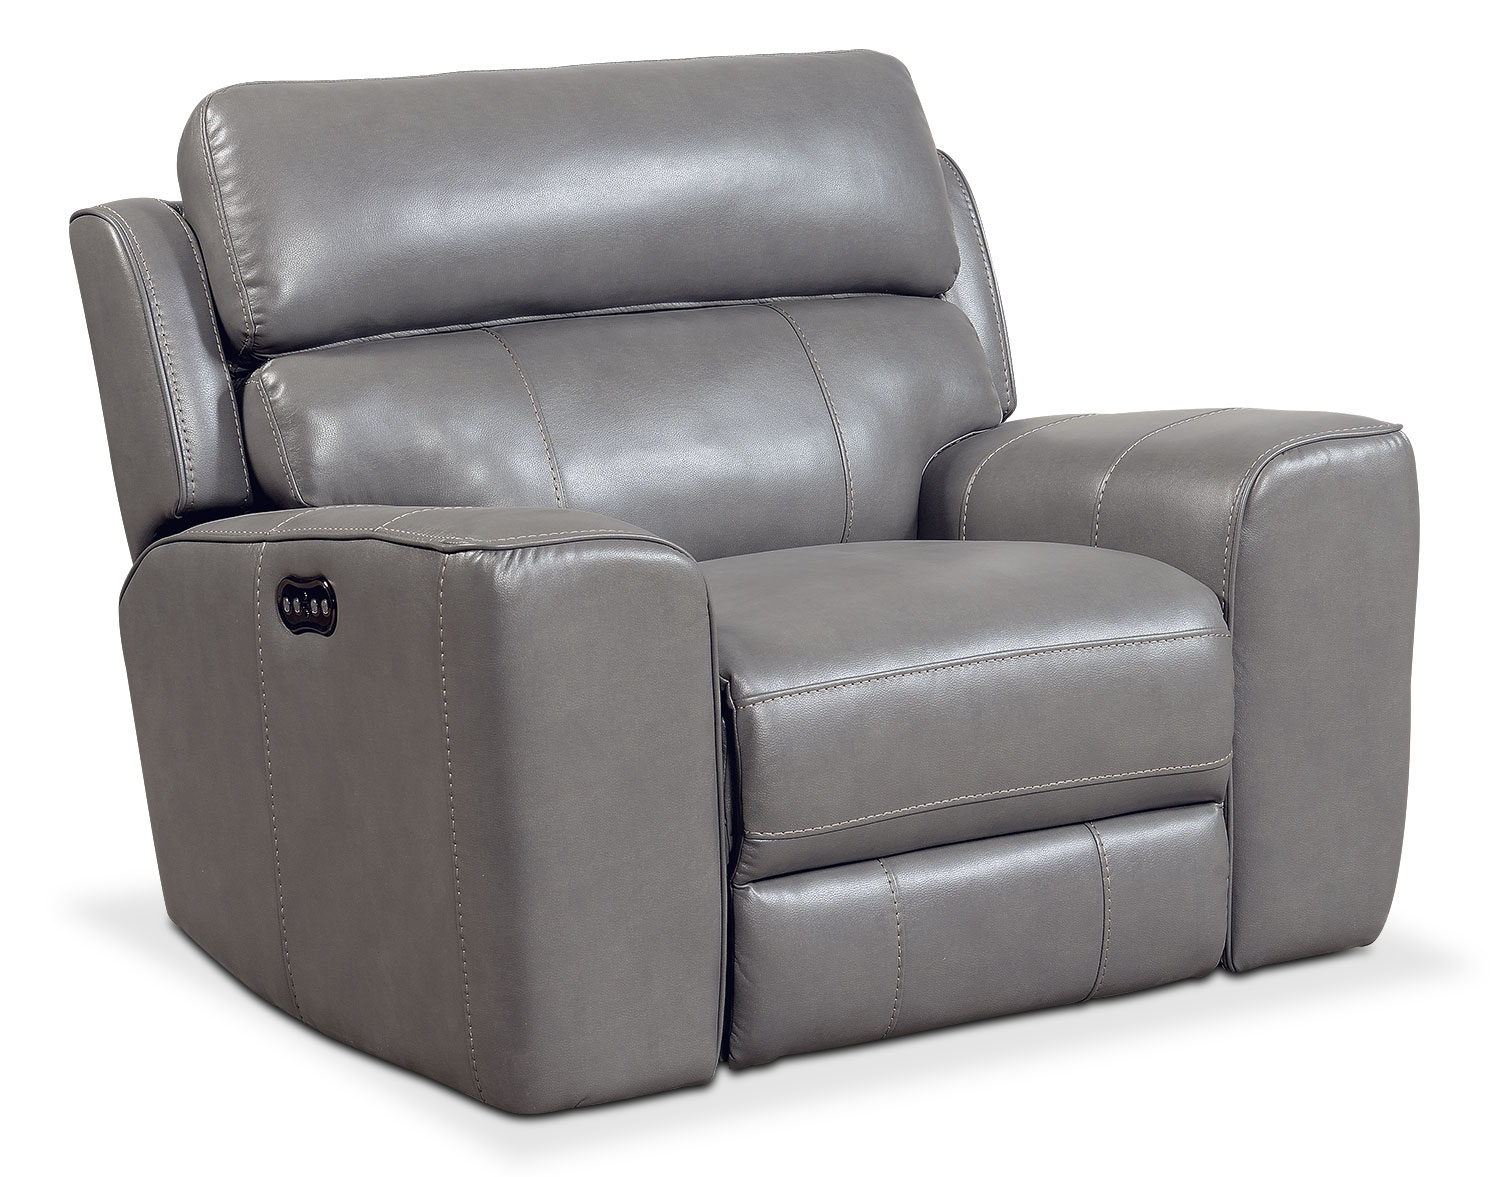 Living Room Furniture - Newport Power Recliner - Gray